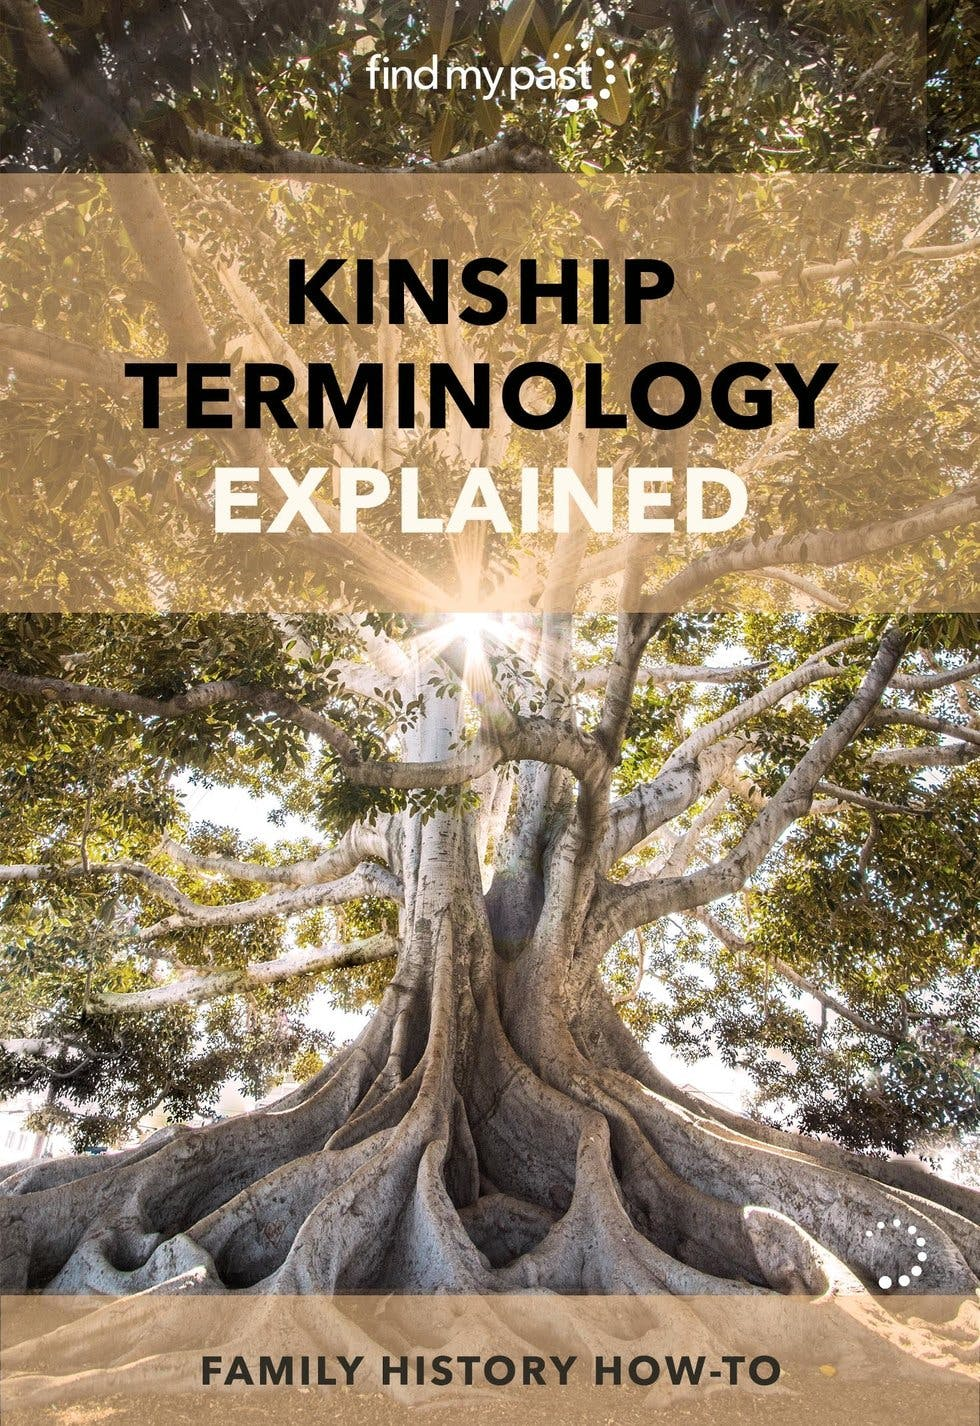 kinship-terminology-how-we-refer-to-our-family-relationships-image